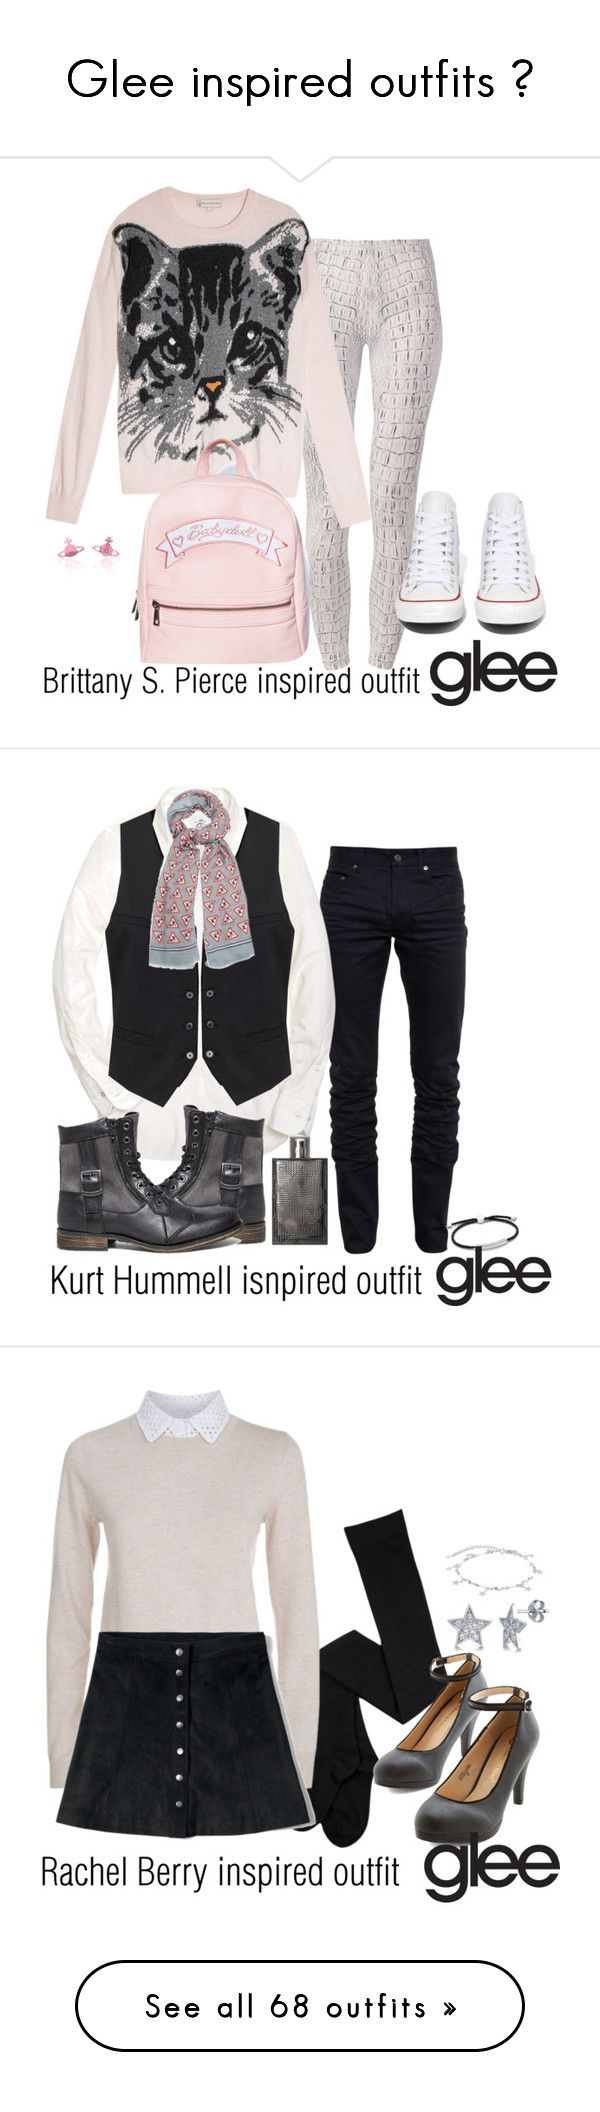 """Glee inspired outfits ♥"" by tvdsarahmichele ❤ liked on Polyvore featuring mode, Due., Paul & Joe Sister, Converse, Vivienne Westwood, Yves Saint Laurent, Brooks Brothers, H&M, Anya Hindmarch et Steve Madden"